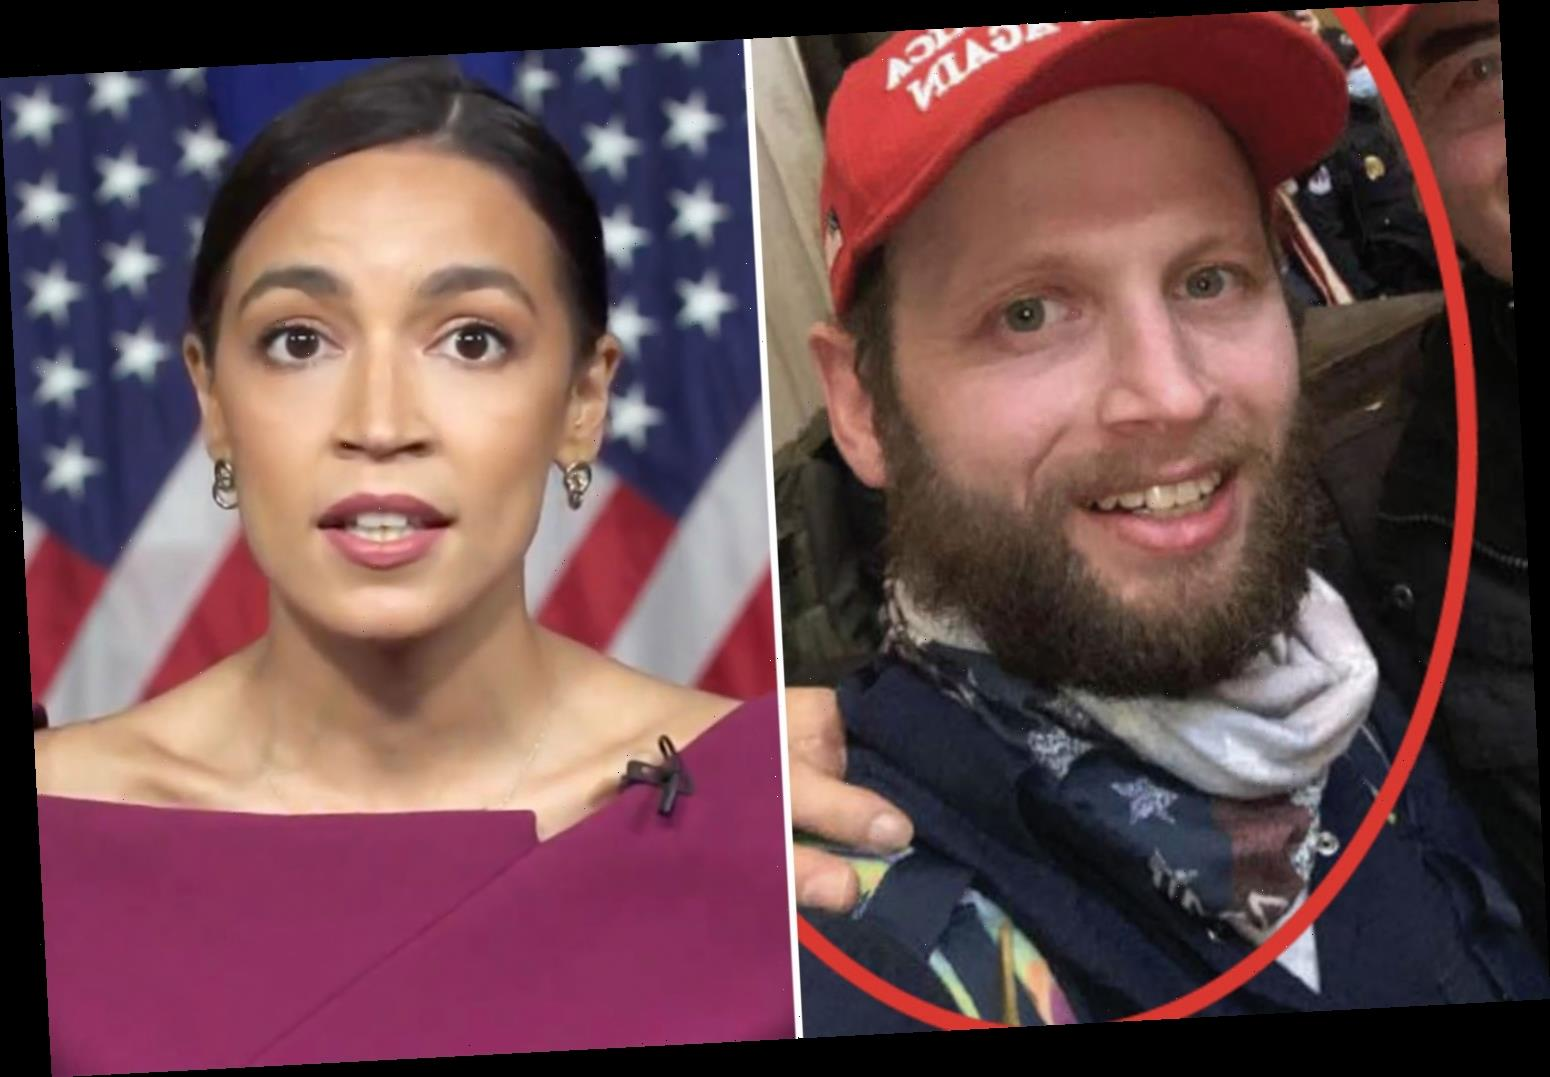 Capitol 'rioter' Garret Miller charged over threat to kill Alexandria Ocasio-Cortez with 'assassinate AOC' tweet